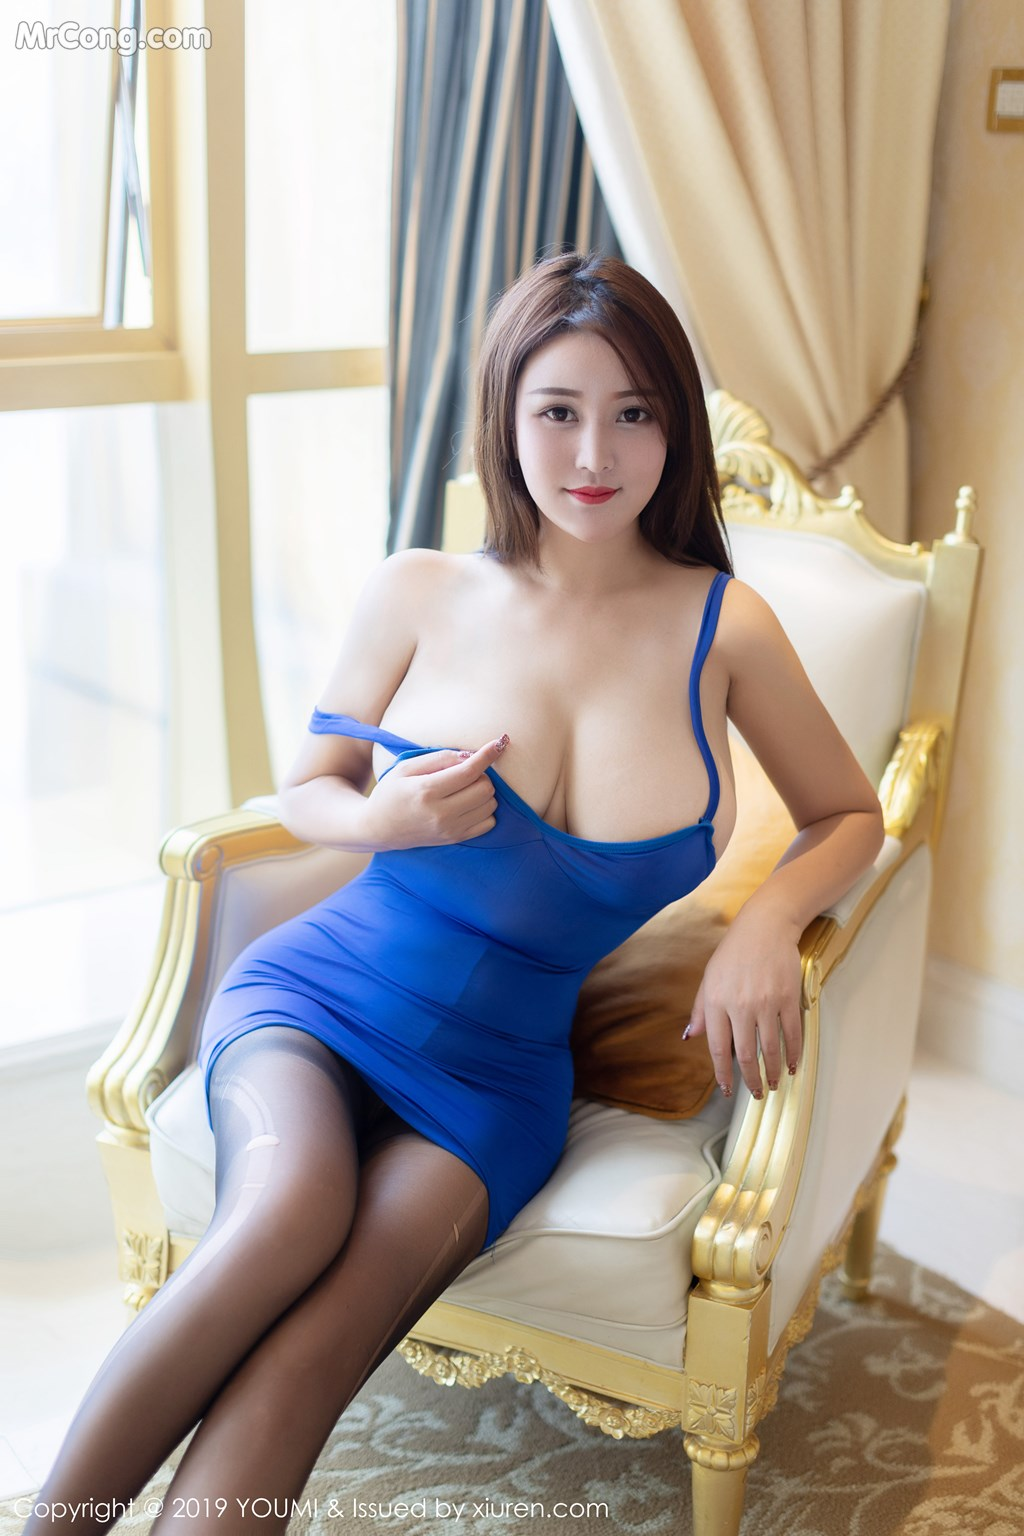 Image YouMi-Vol.341-ber-MrCong.com-002 in post YouMi Vol.341: 潘琳琳ber (56 ảnh)